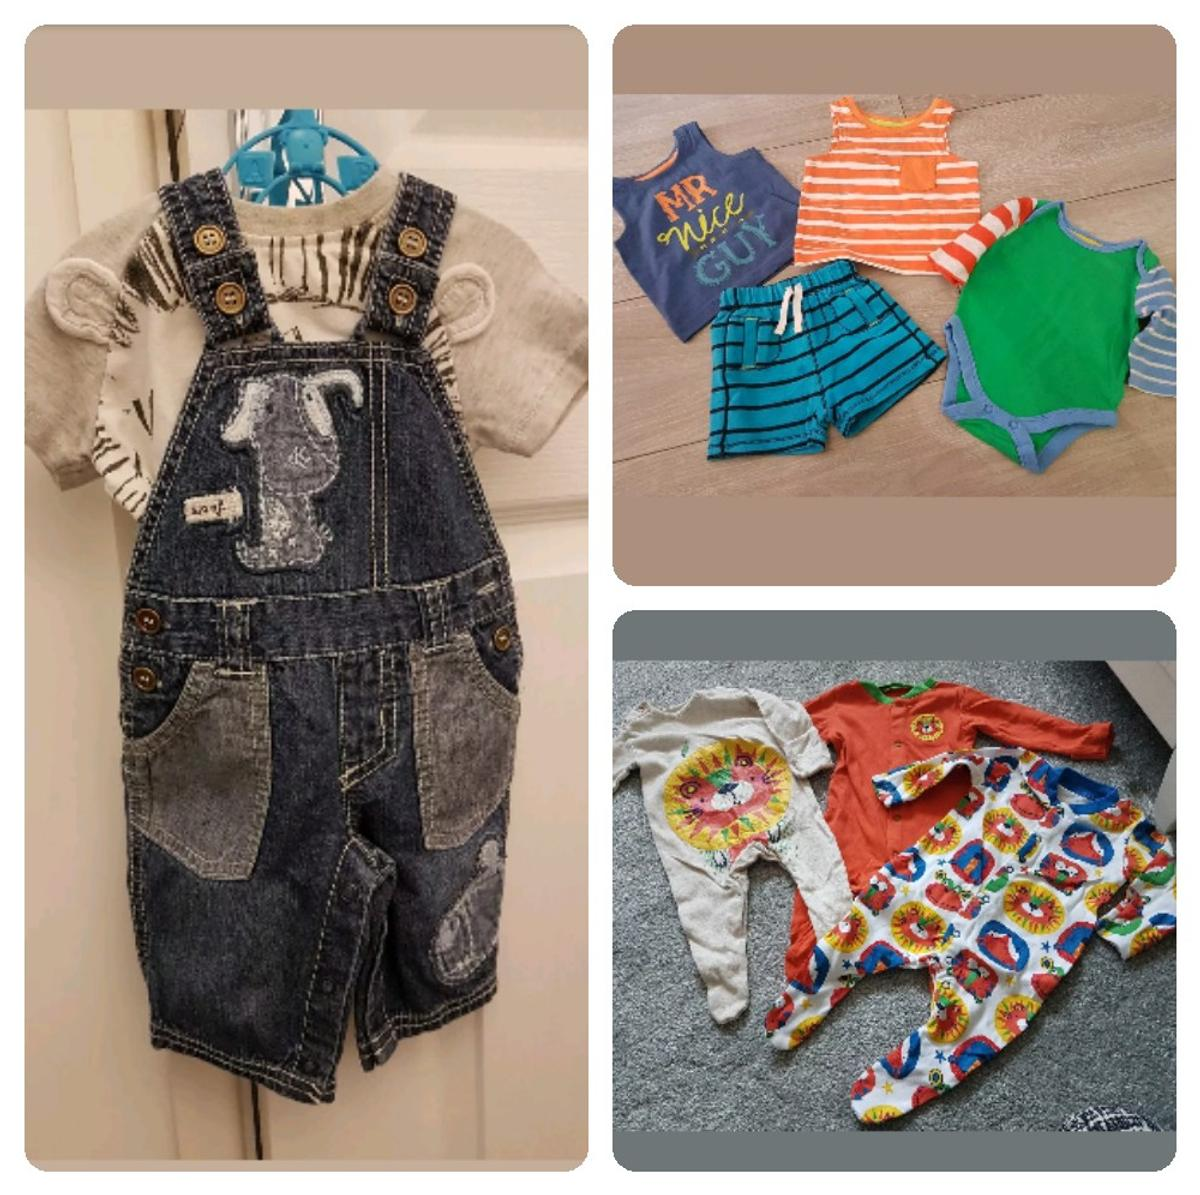 excellent condition hardly worn. denim dungerees and top next ...tu baby grows ...f&f vests .